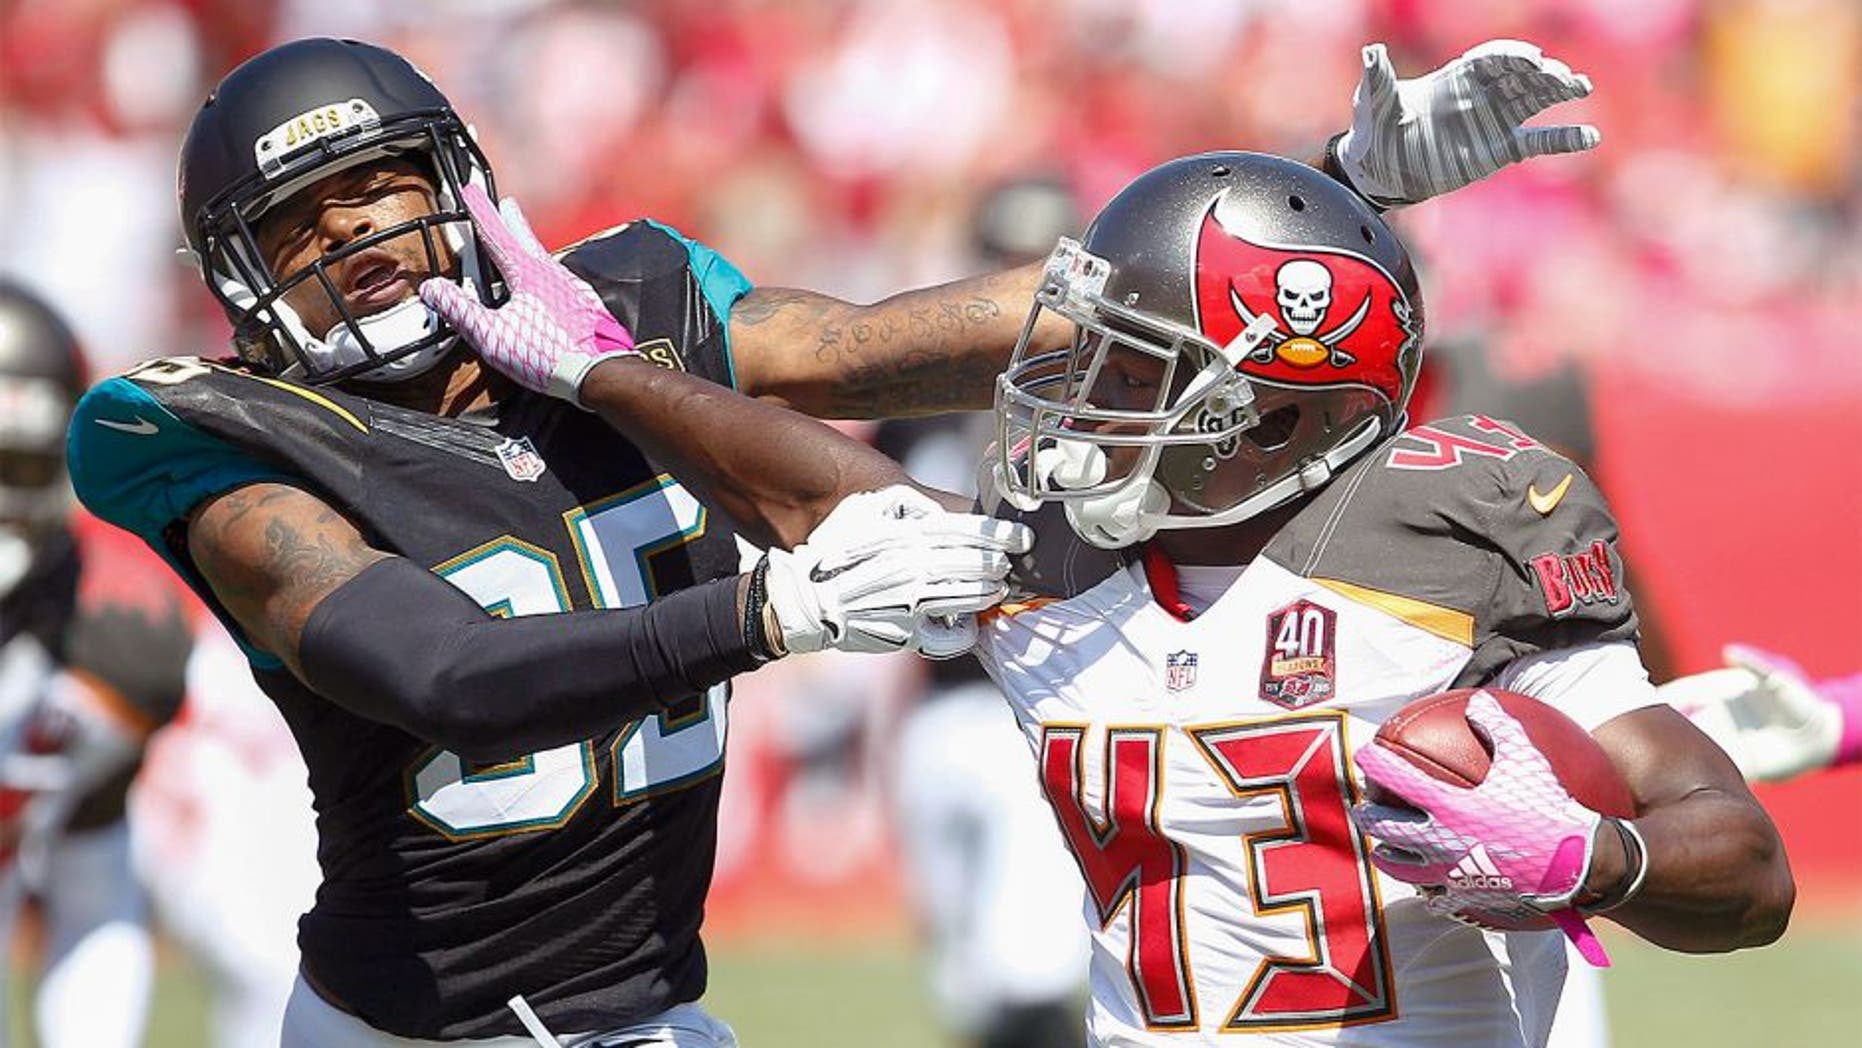 Oct 11, 2015; Tampa, FL, USA; Jacksonville Jaguars cornerback Demetrius McCray (35)is stiff armed by Tampa Bay Buccaneers running back Bobby Rainey (43) during the second quarter of an NFL football game at Raymond James Stadium. Mandatory Credit: Reinhold Matay-USA TODAY Sports